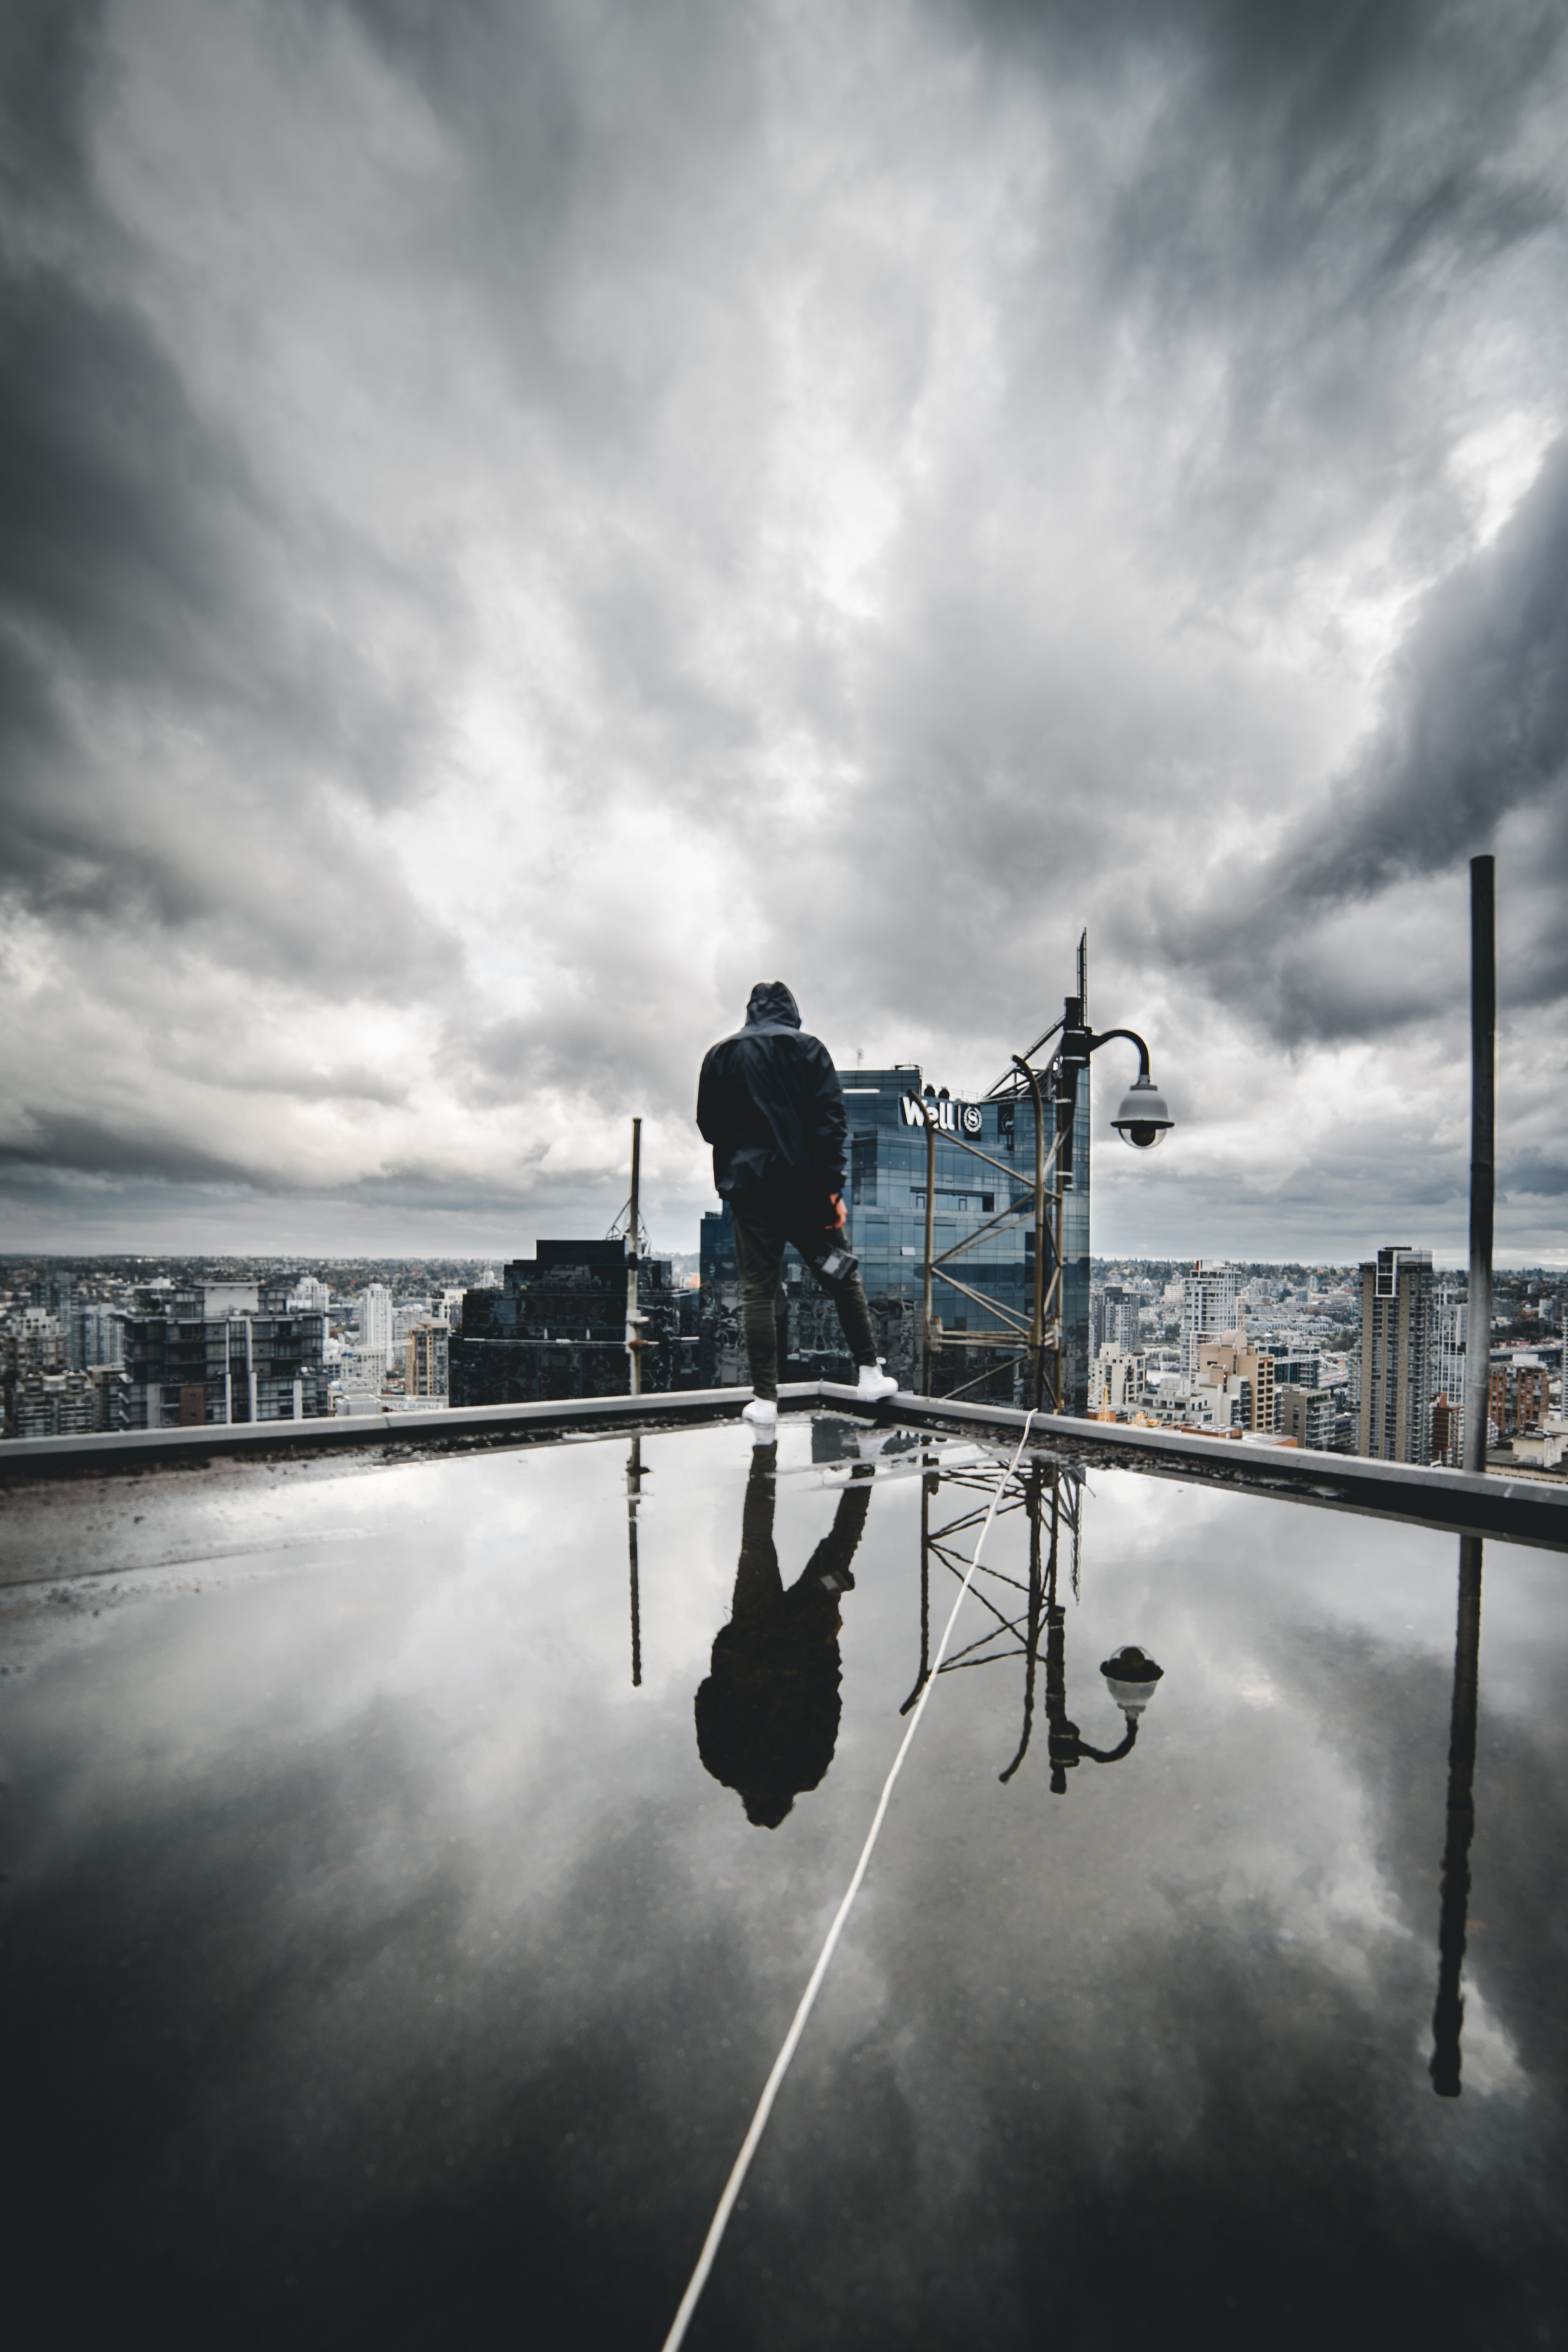 man standing on top of building under cloudy sky